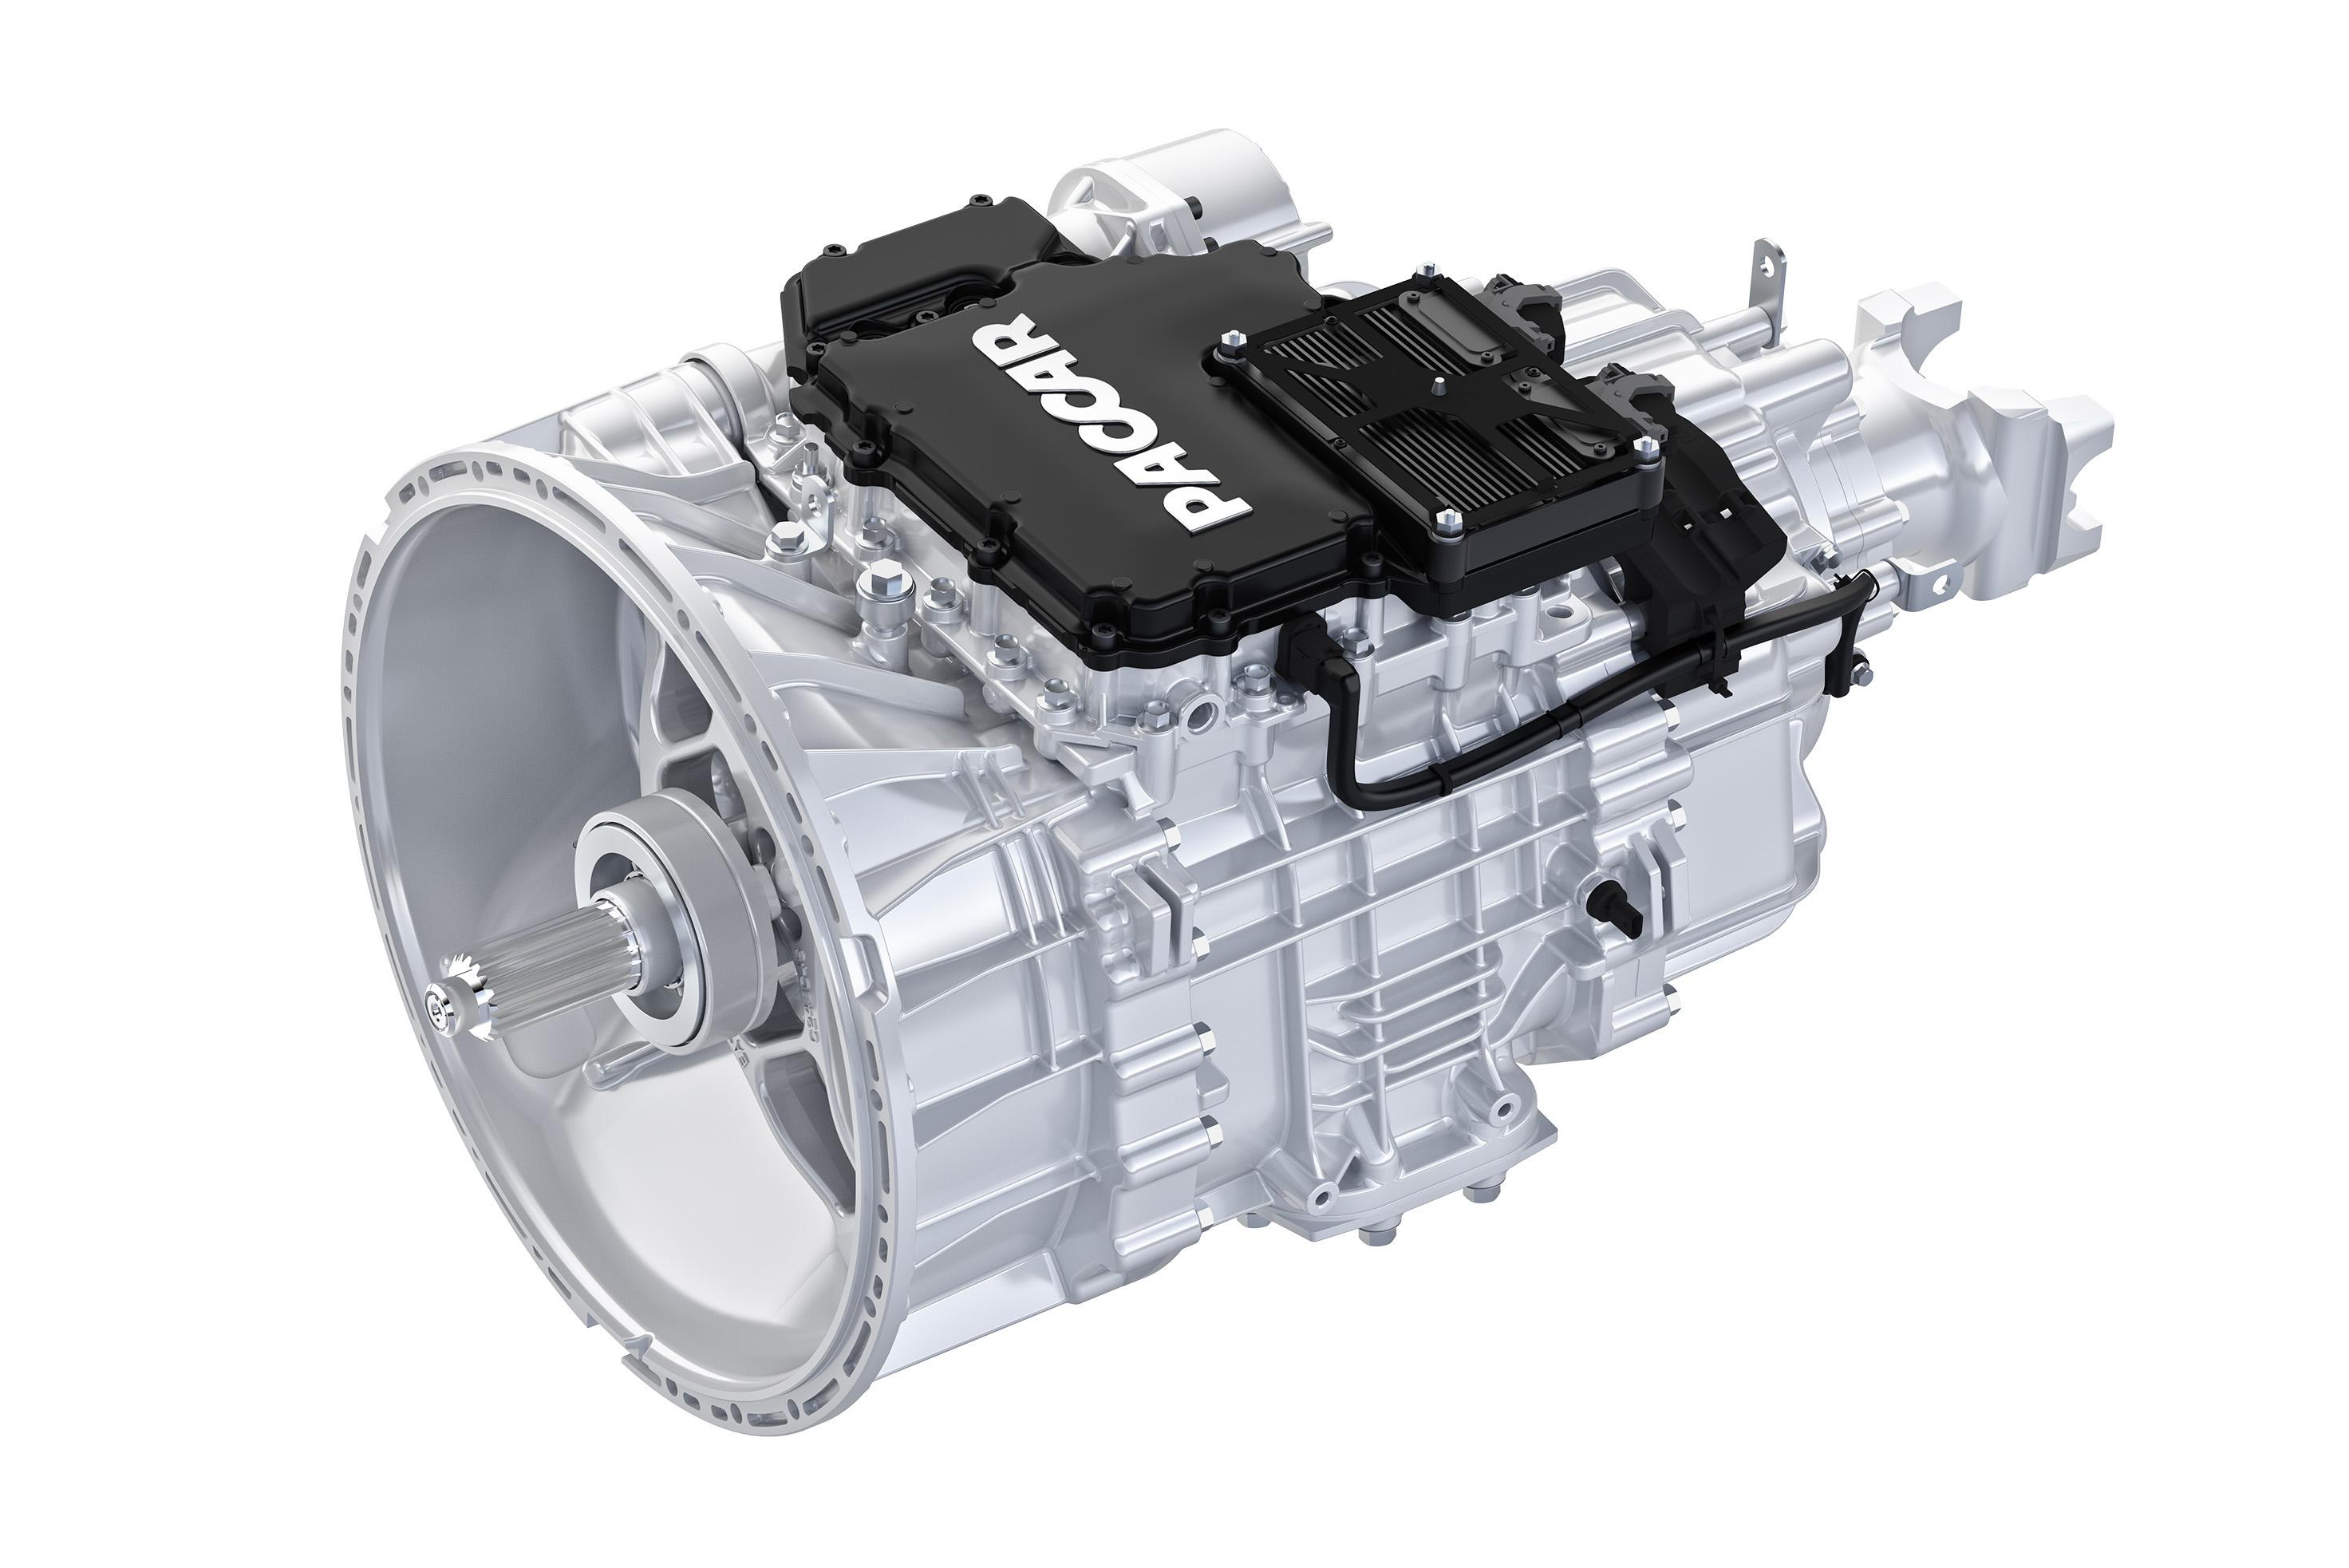 Test drive: 12-speed automated transmission from Paccar